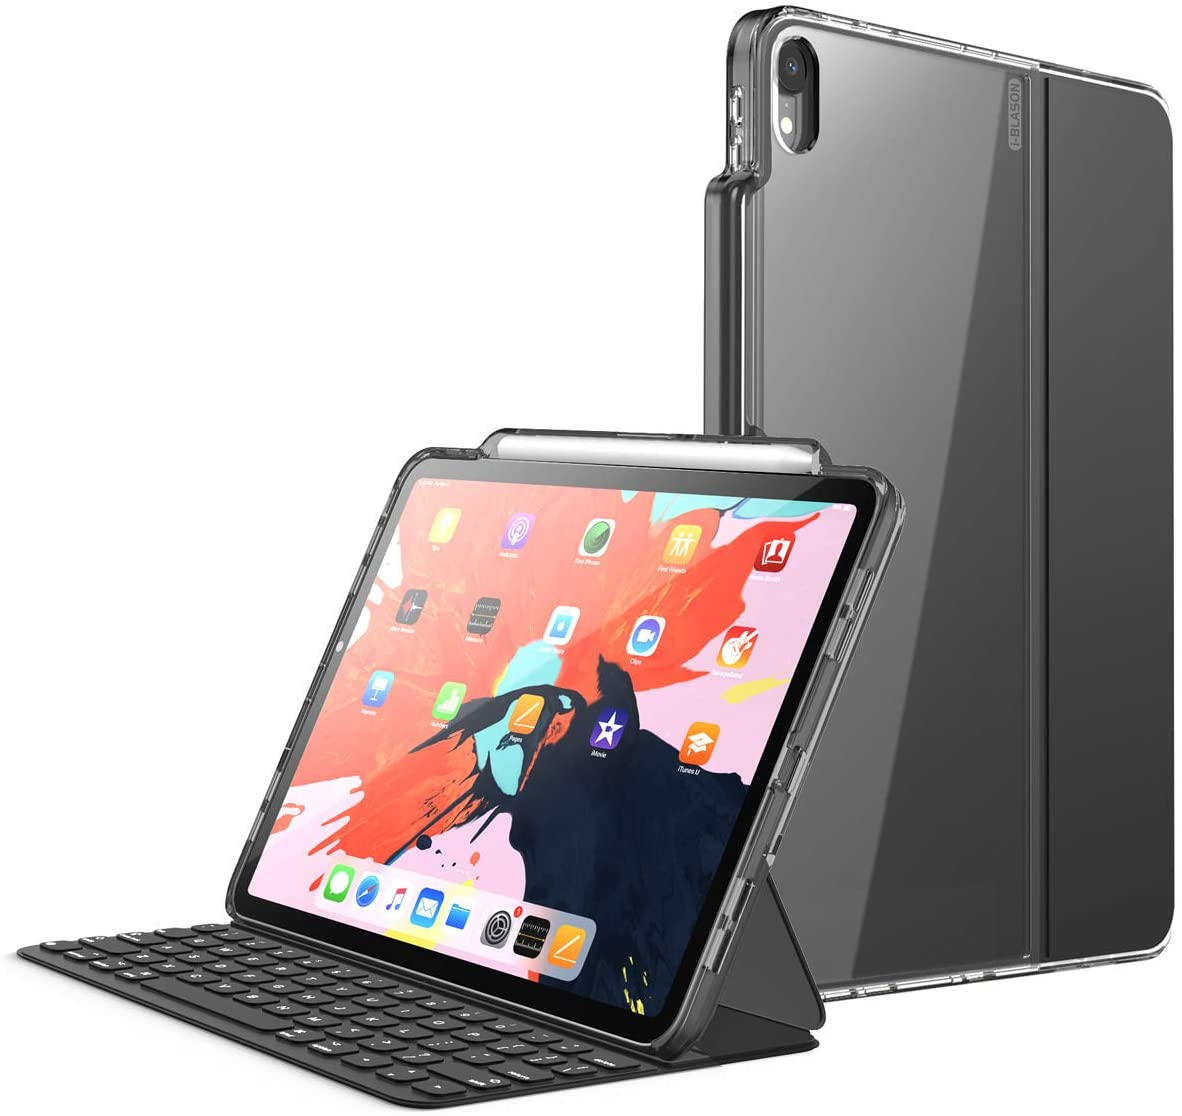 i-Blason Halo V2.0 Series Case Designed for iPad Pro 11 Inch Case 2018, [for use ONLY with Smart Keyboard; Compatible with Official Smart Folio] Hybrid Protective Case with Pencil Holder, Black, 11